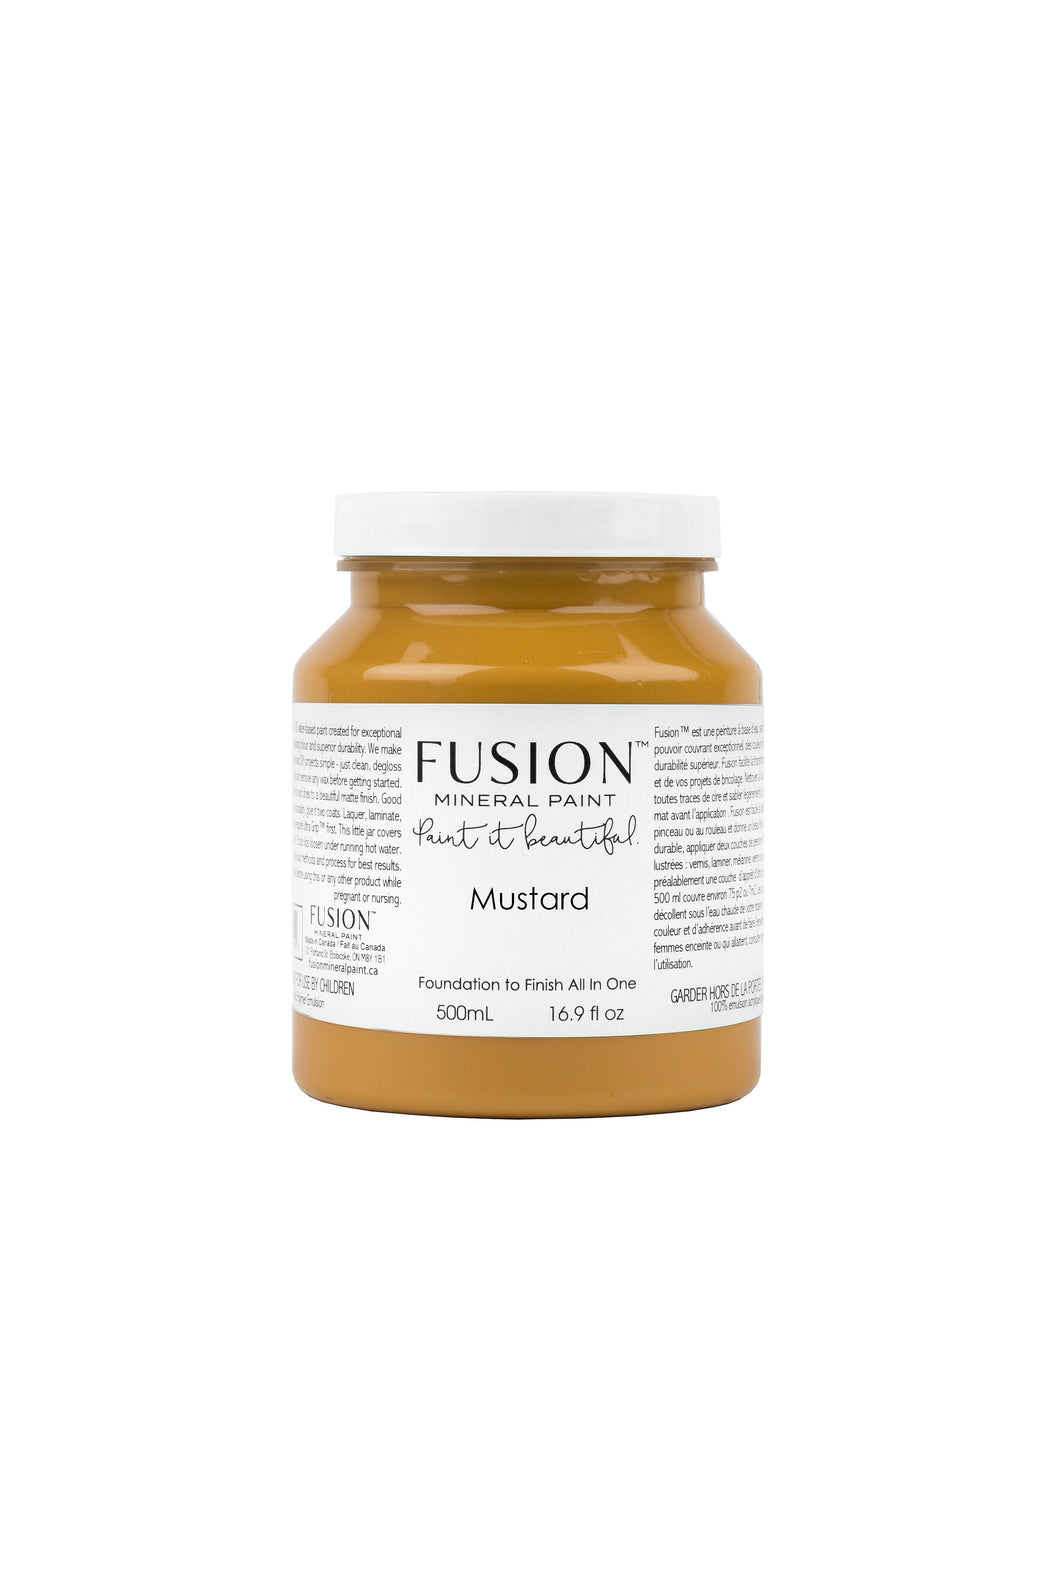 Fusion mineral paint | Mustard | 500ml | Colour Me KT